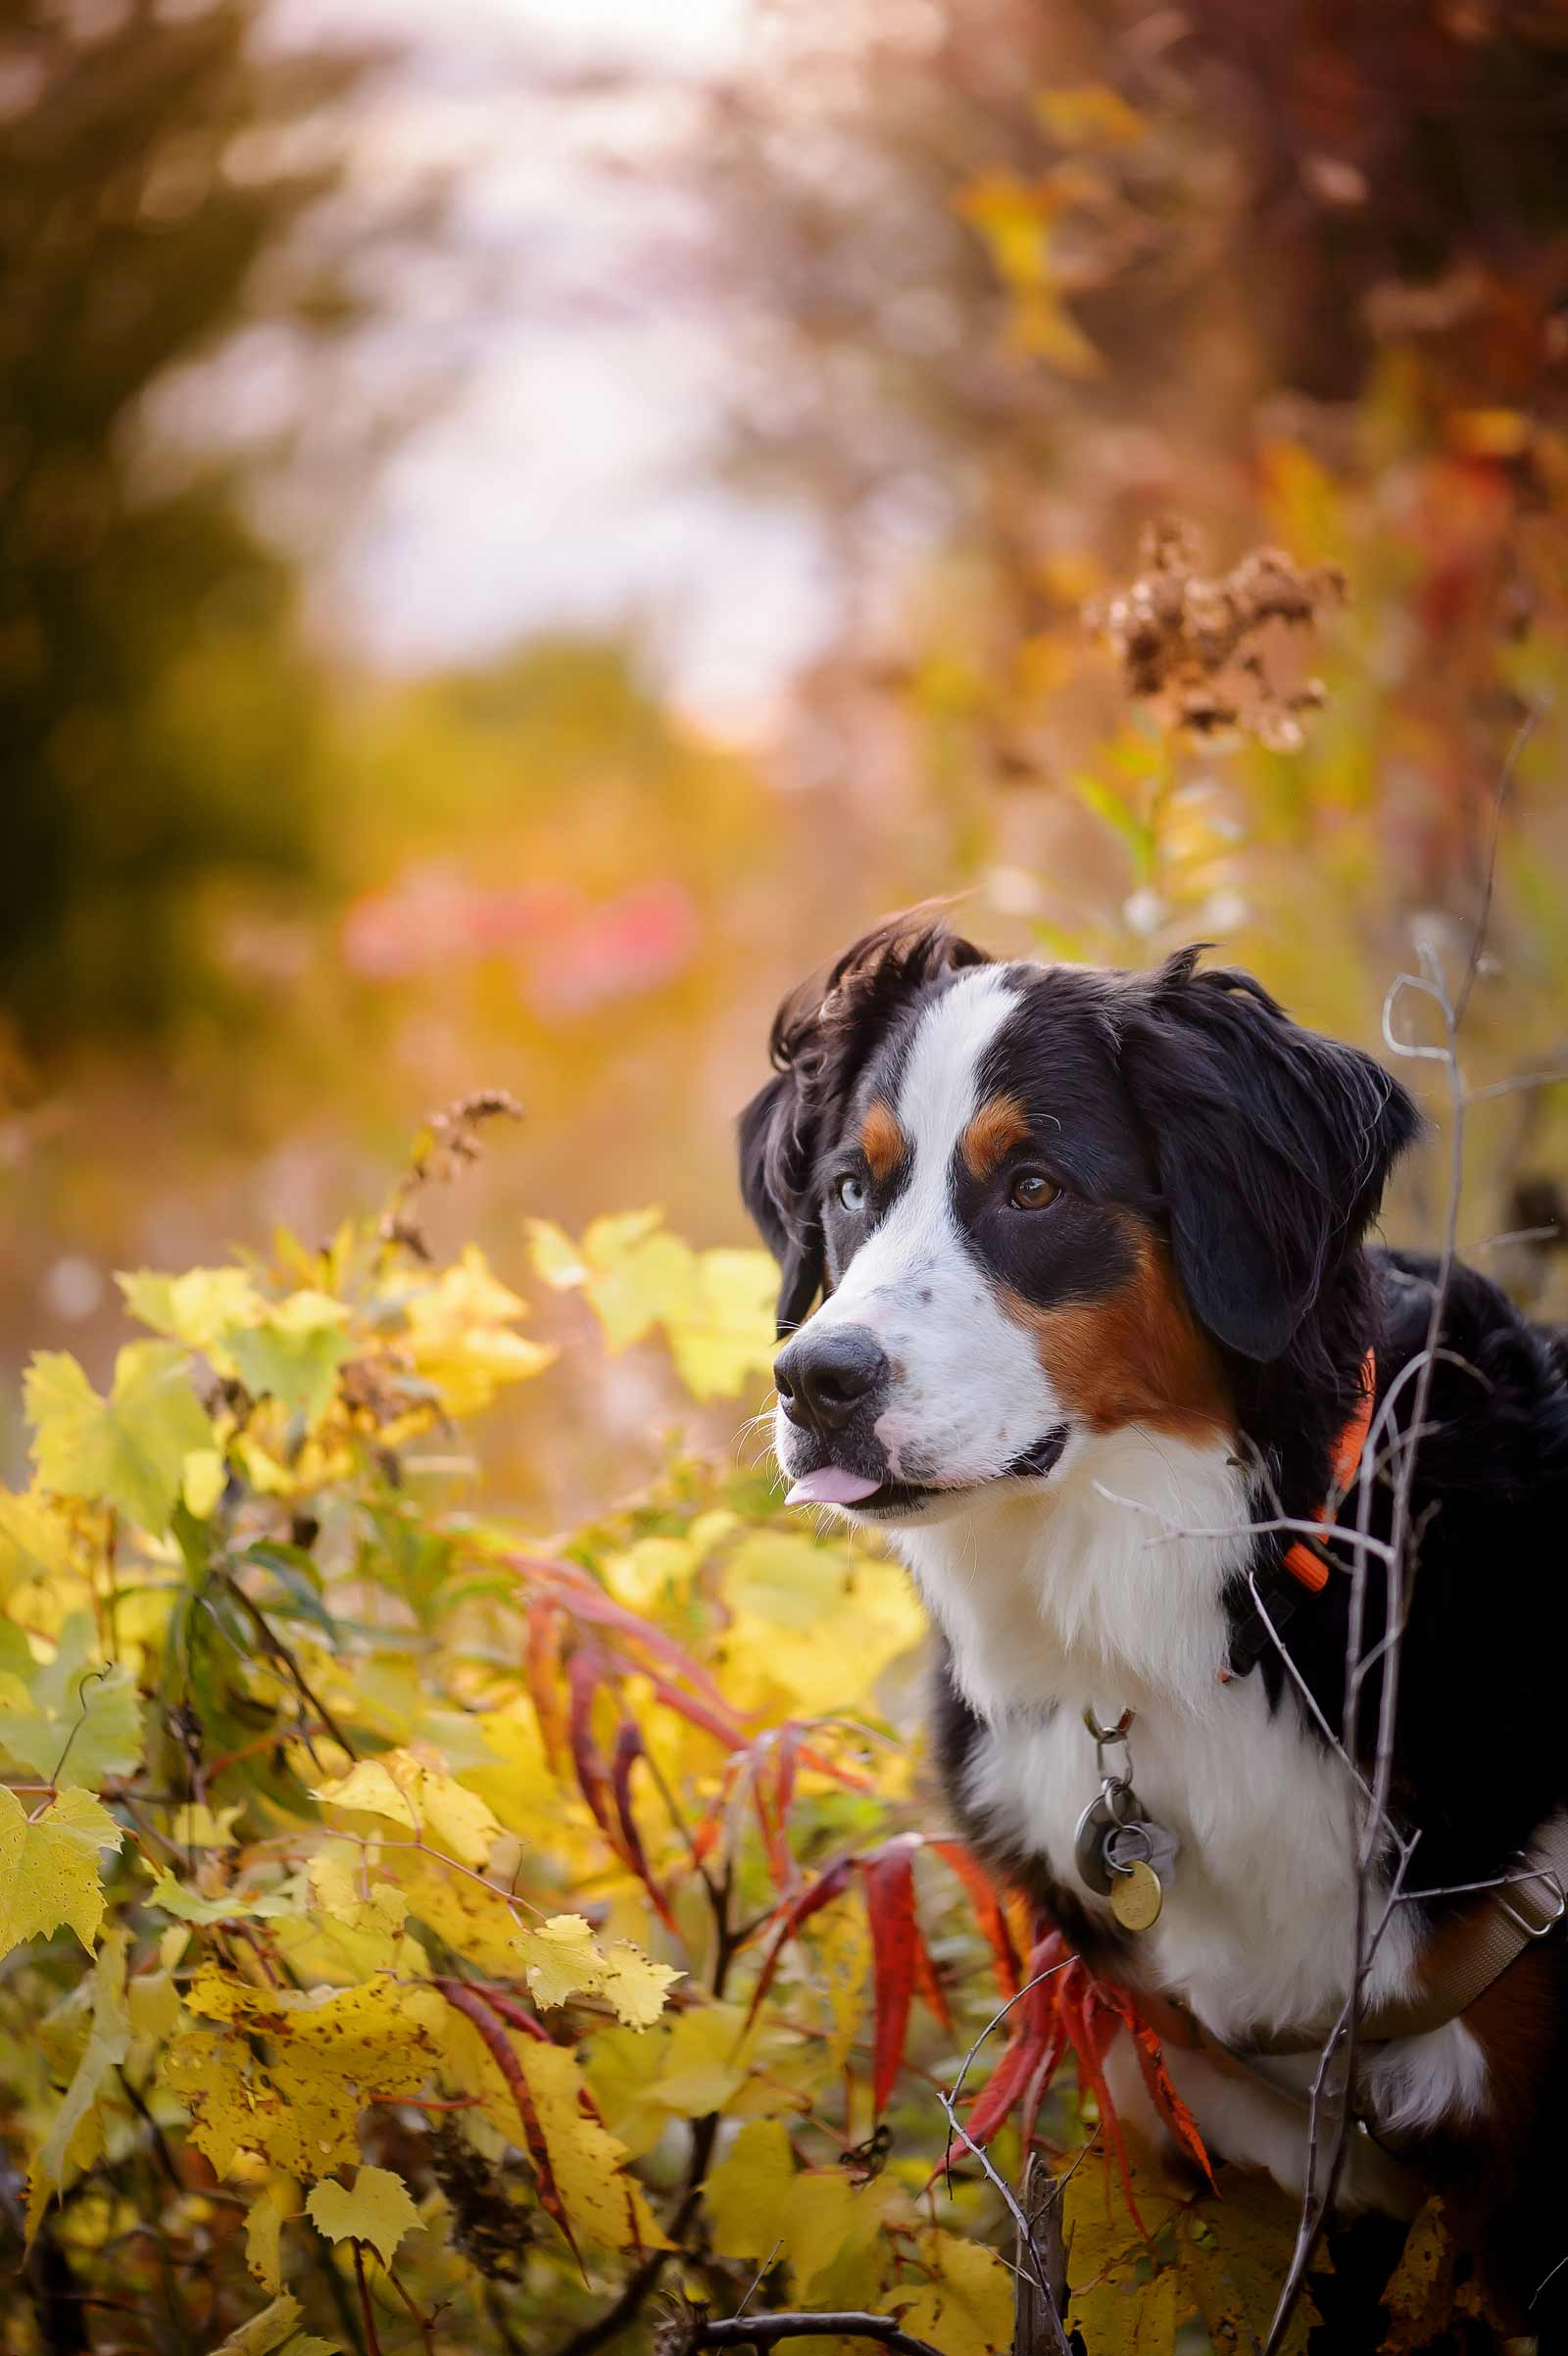 Ottawa Dog Photographer Princess Leia the Bernese mountain dog at Lemieux Island in the fall with her owners standing on a path